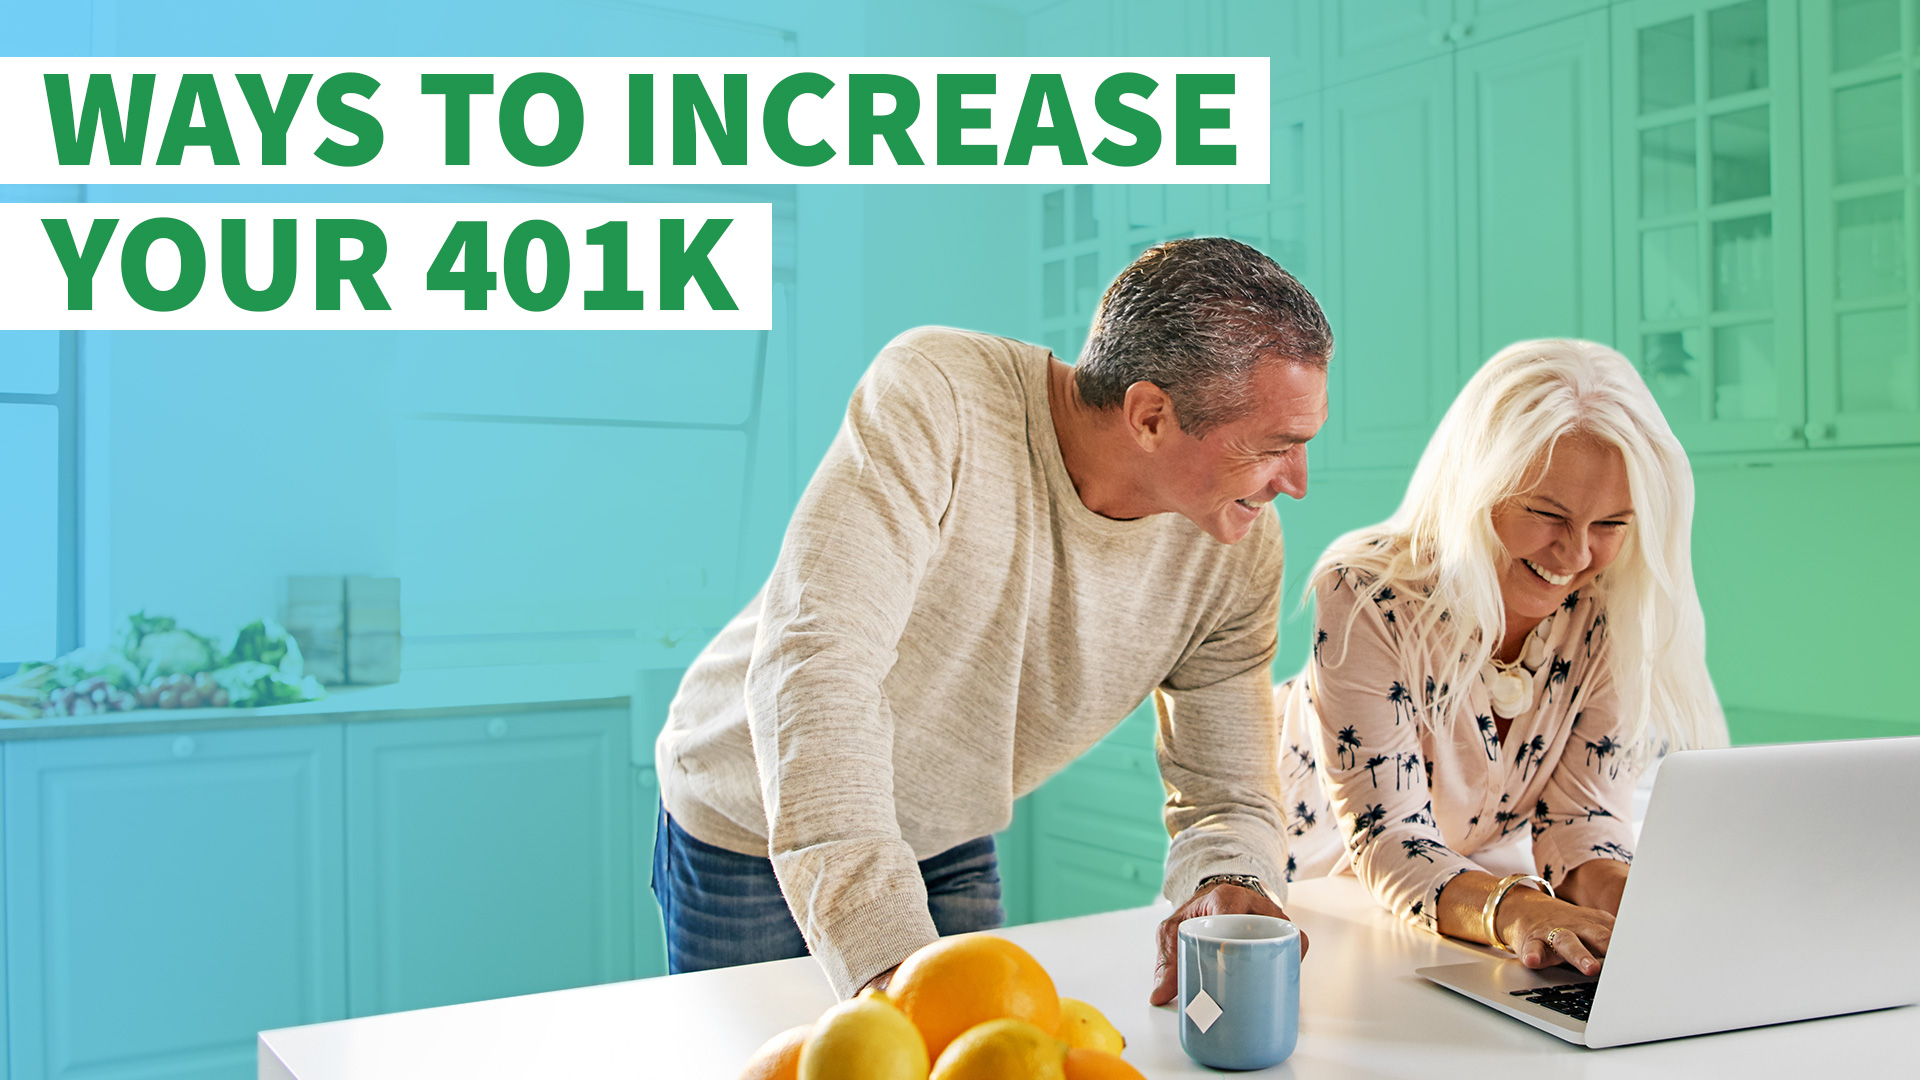 13 Ways to Increase Your 401k